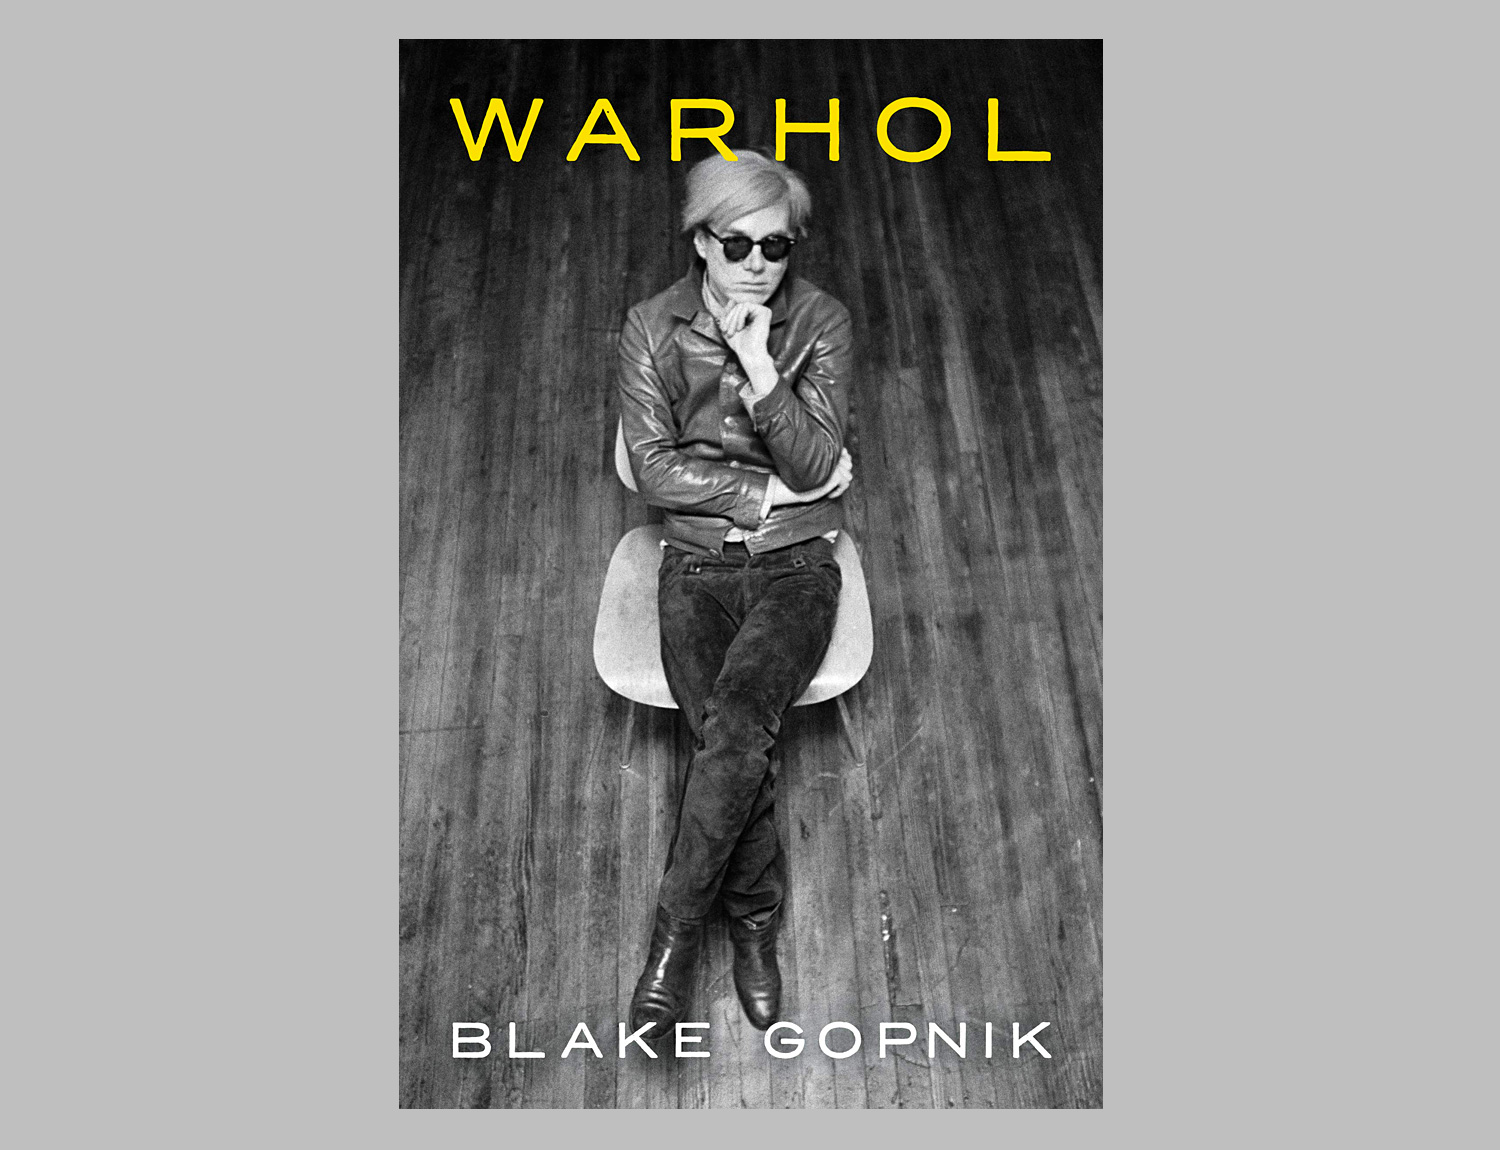 Warhol. The New Biography Goes Far Beyond Soup Cans & Marilyn Monroe at werd.com